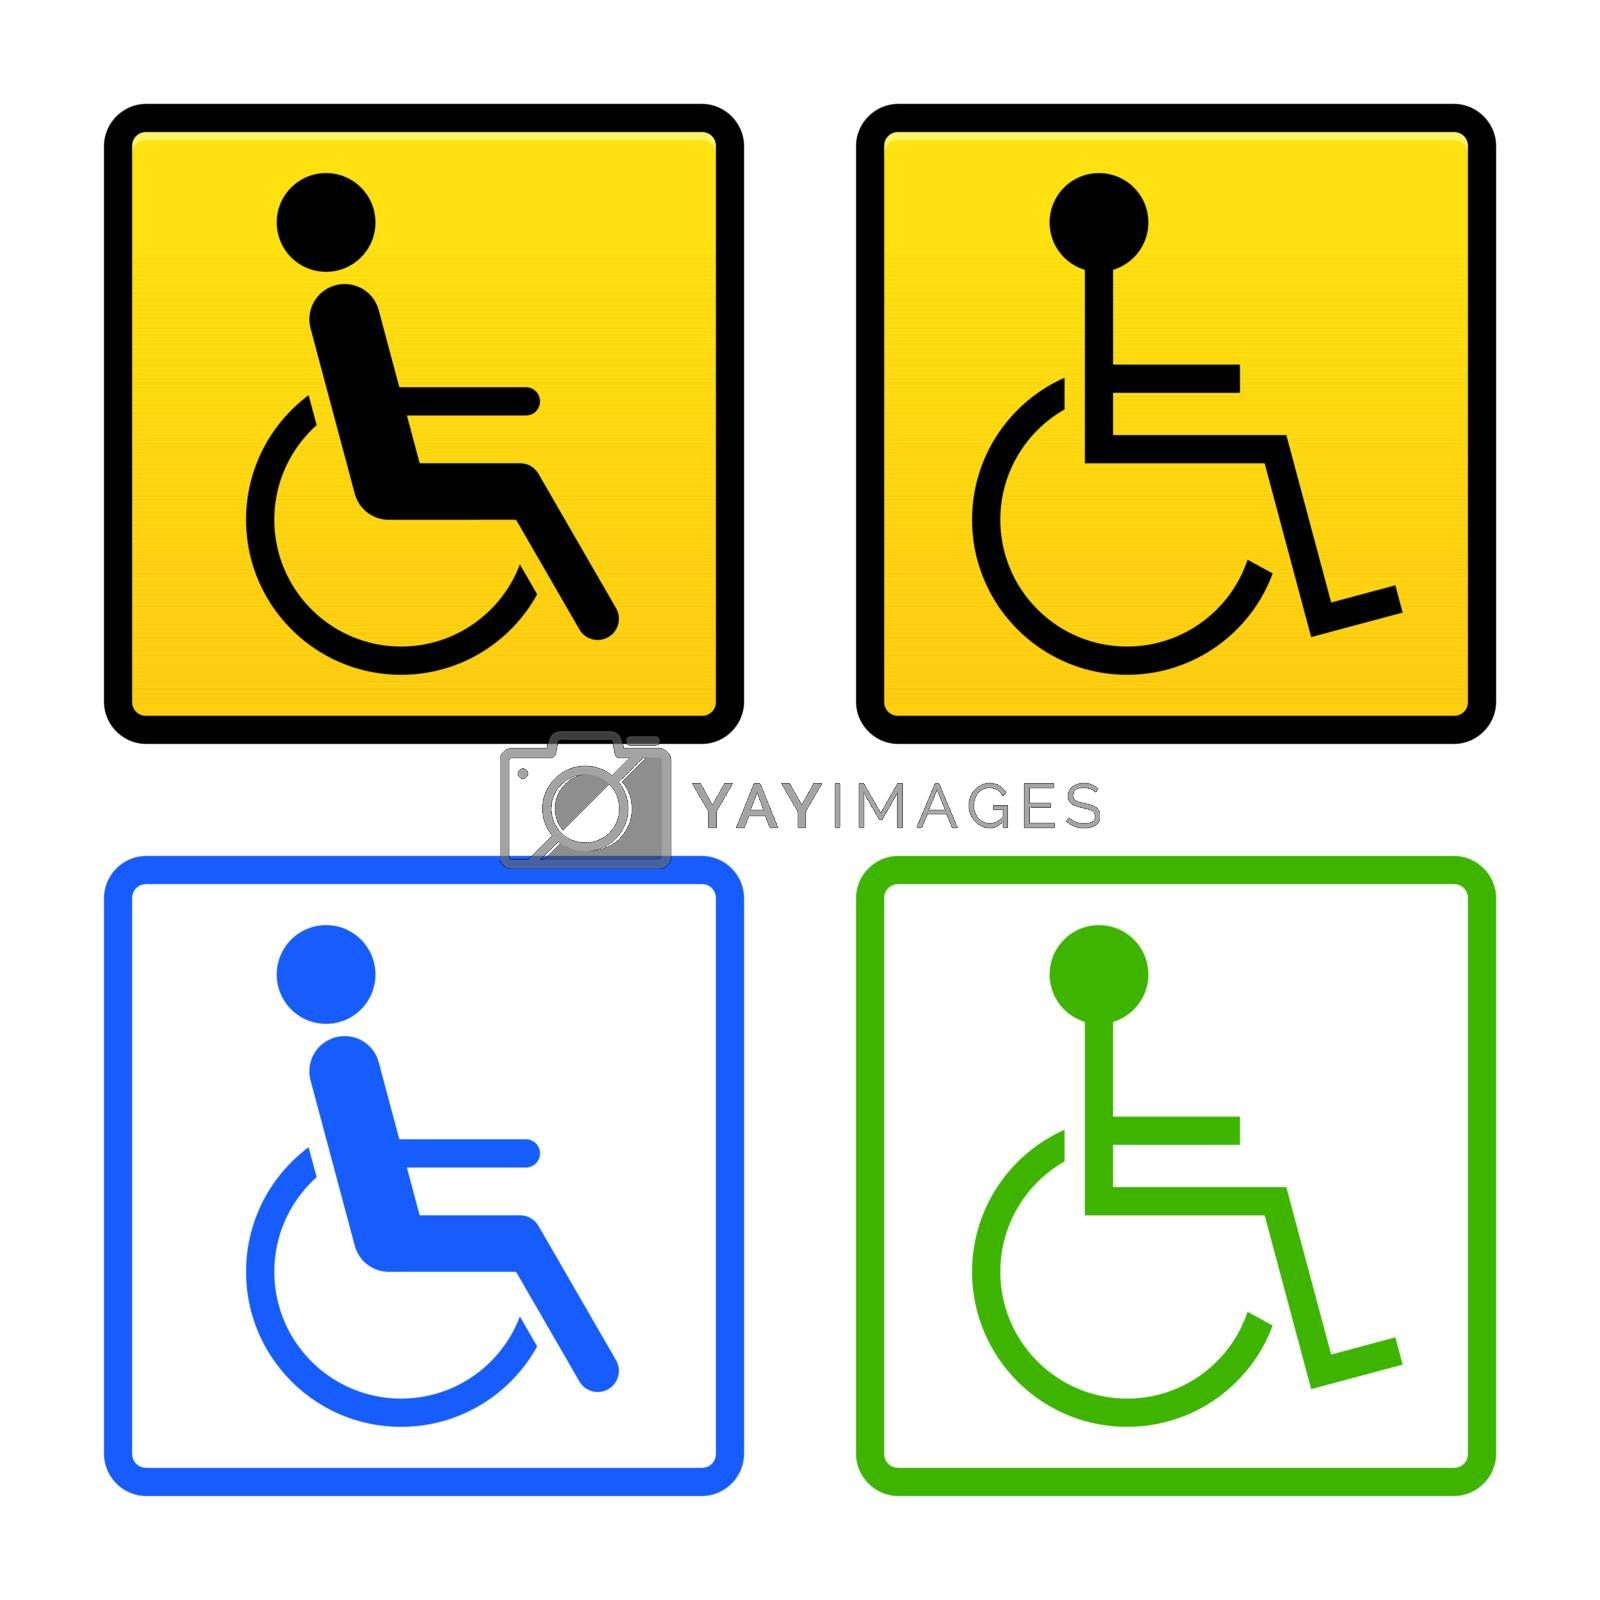 Universal symbol of handicapped person on wheelchair